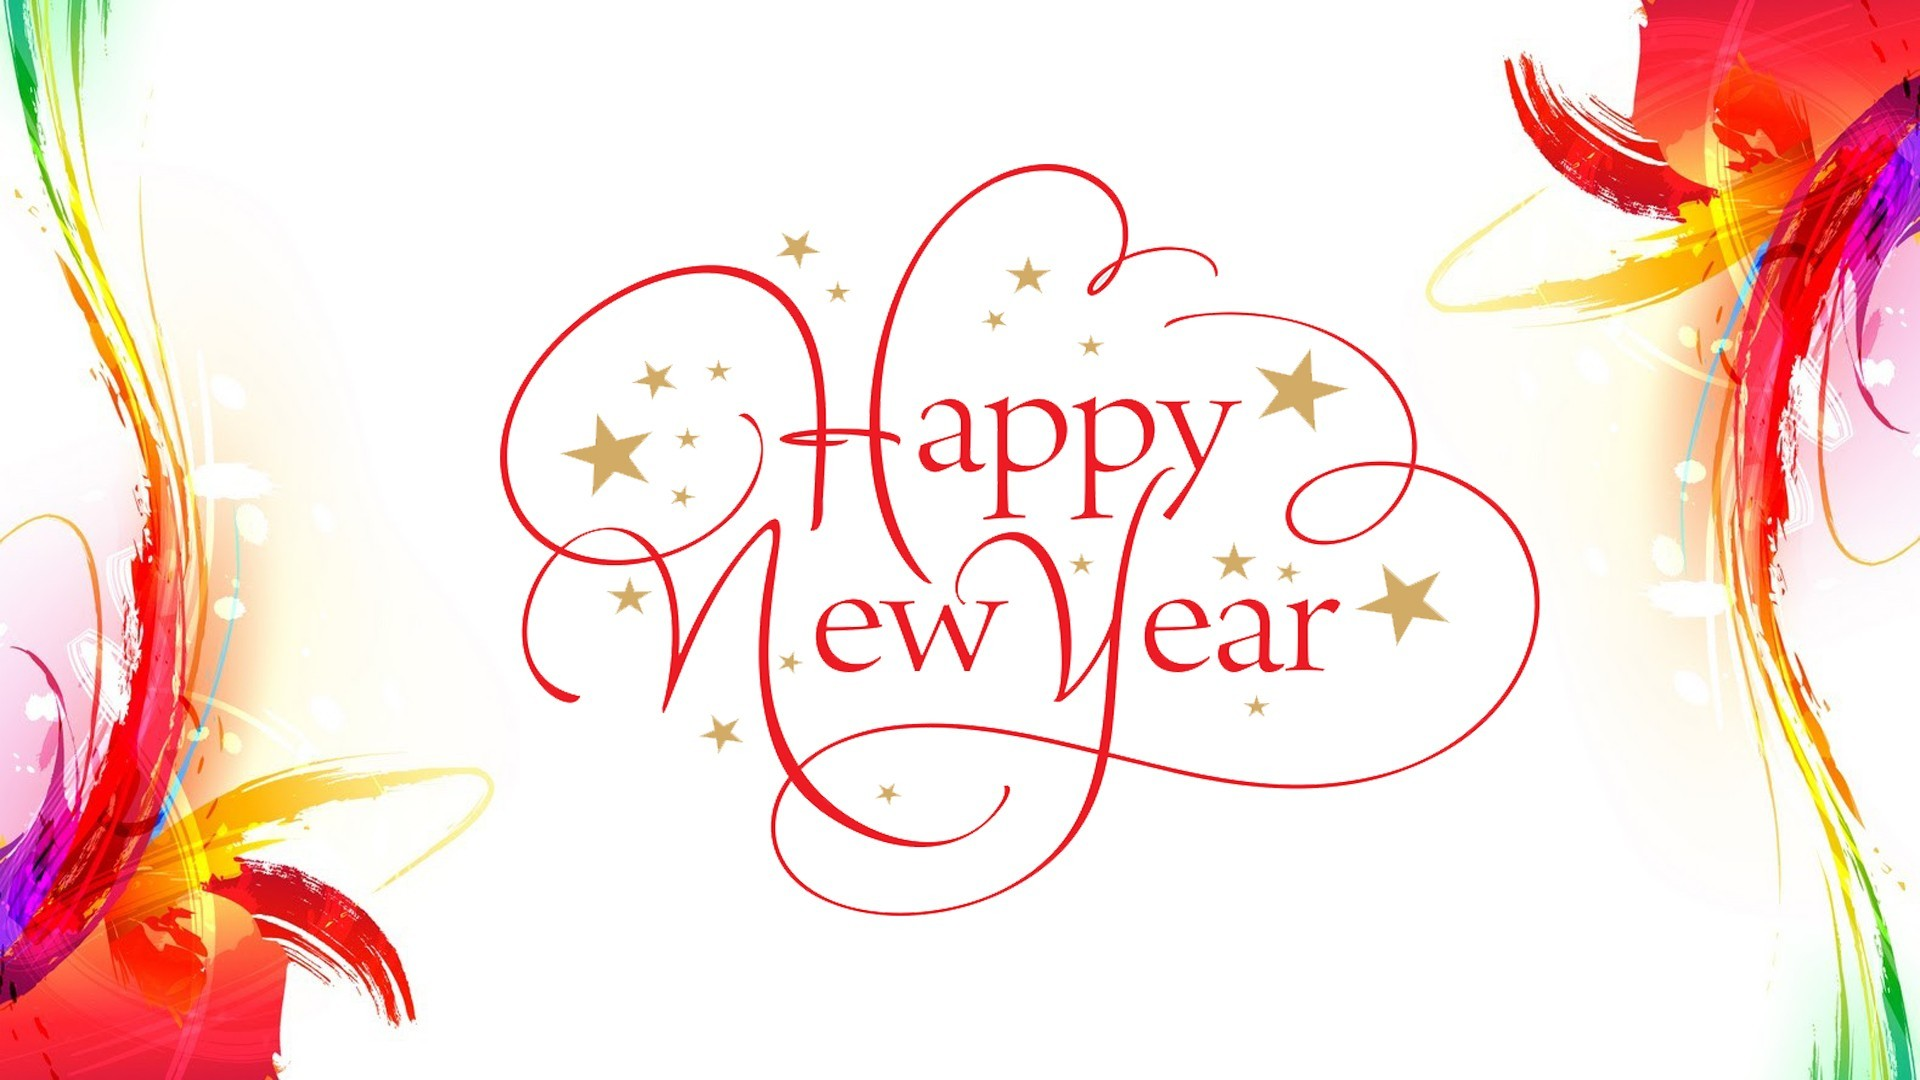 1920x1080 happy new year banner background images 2018 download new